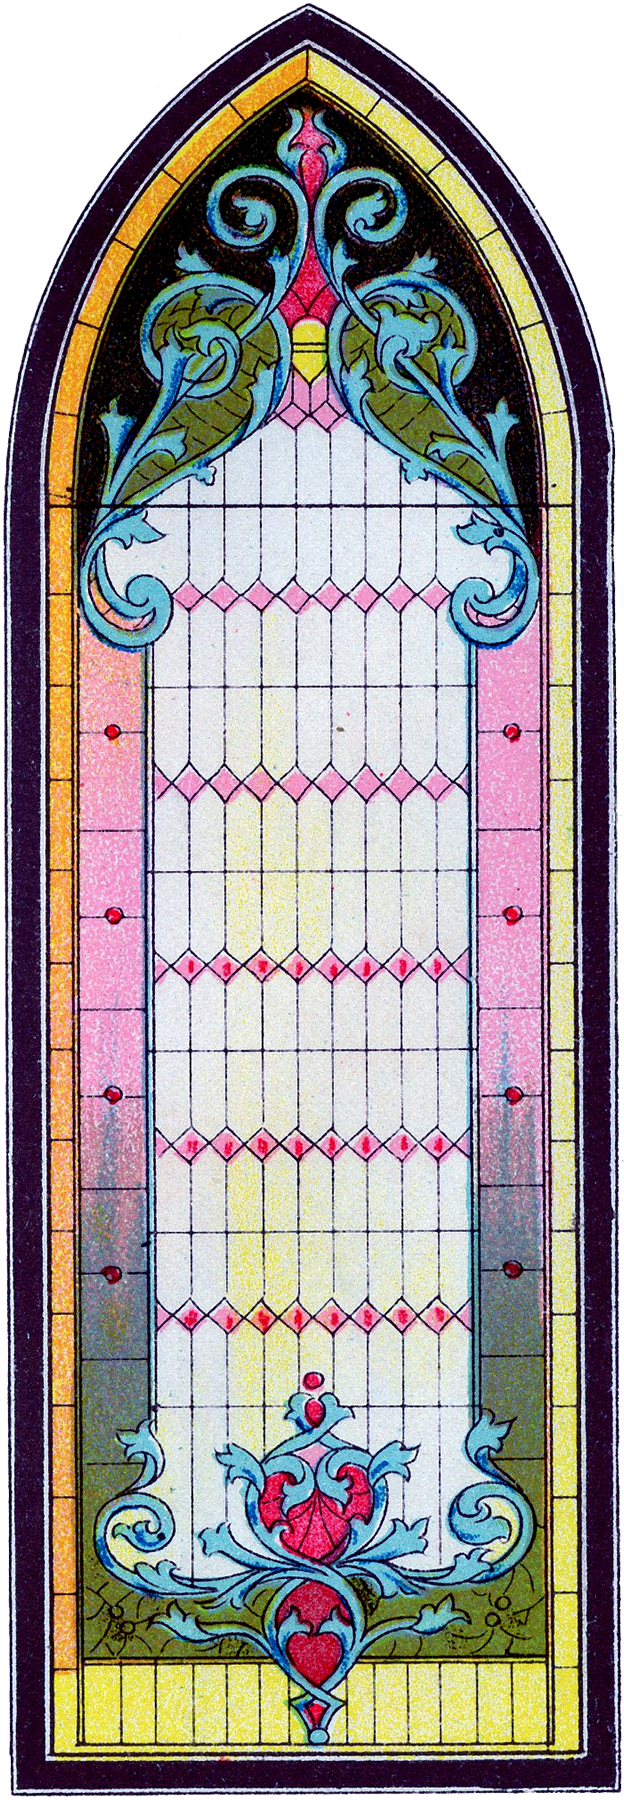 Vintage Stained Glass Gothic Window Image The Graphics